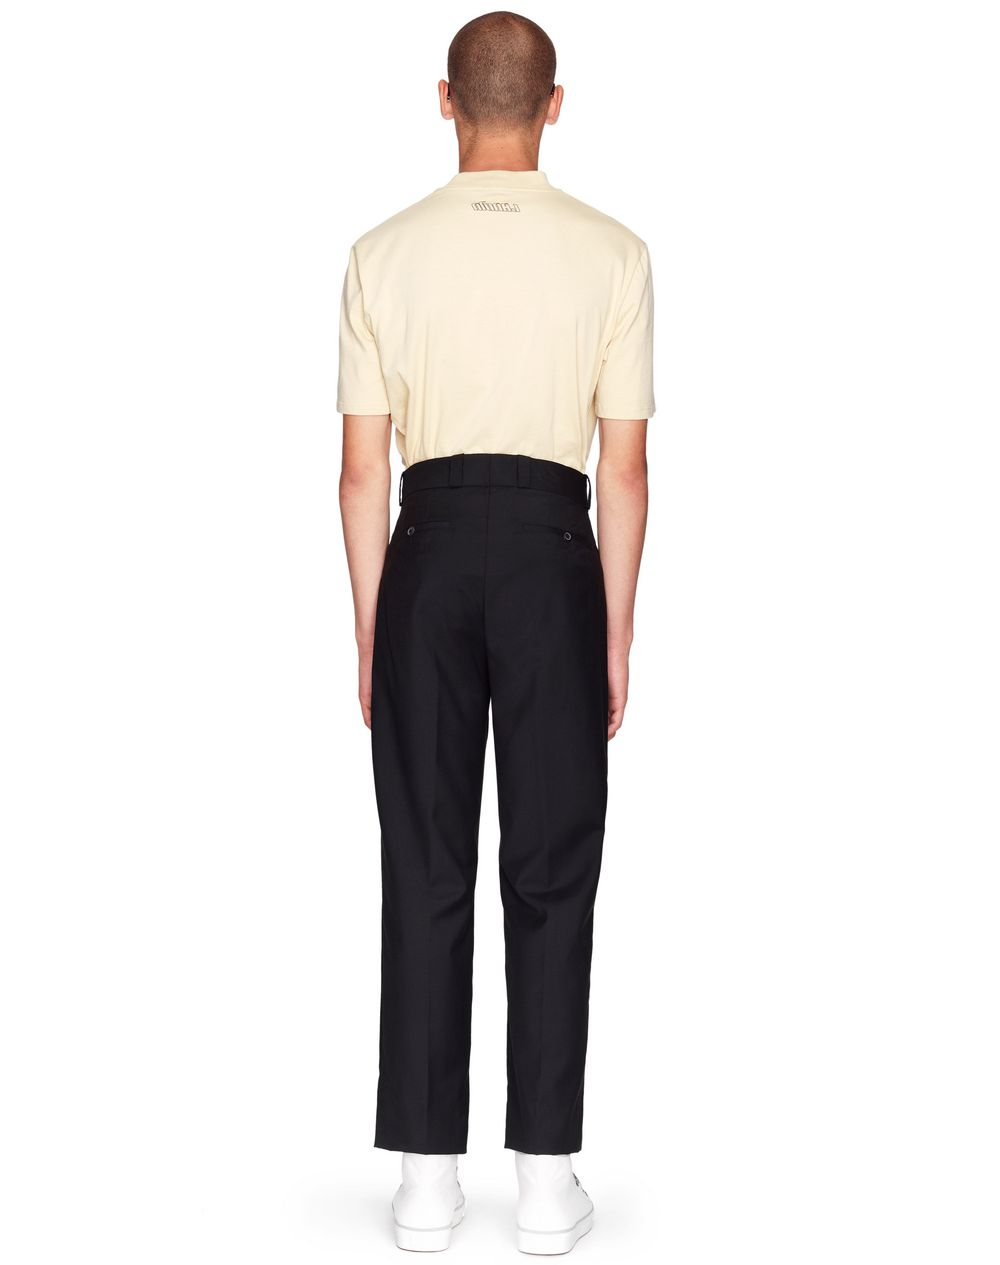 FITTED BLACK WOOL PANTS   - Lanvin